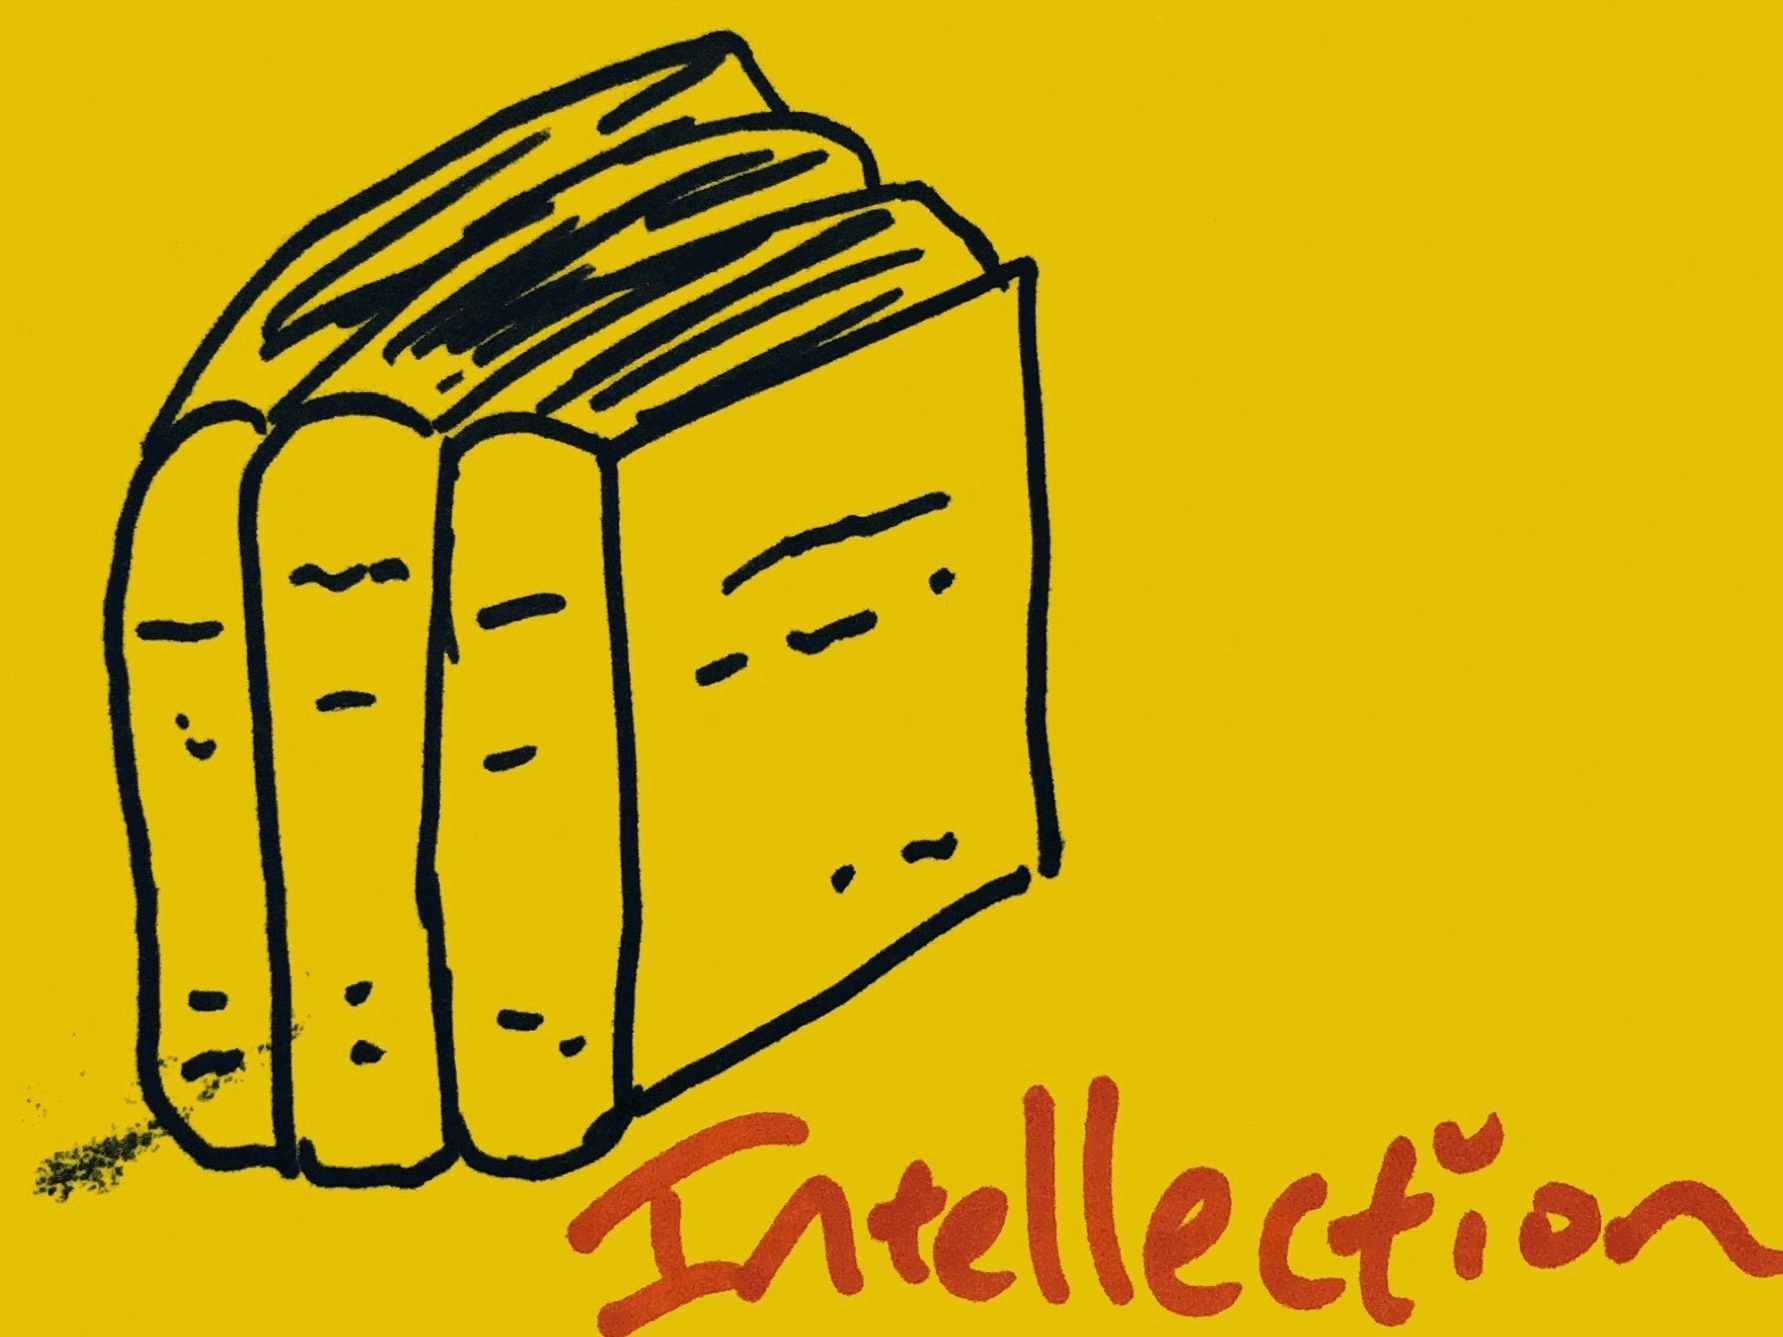 Intellection Strengthsfinder Singapore Book Reading